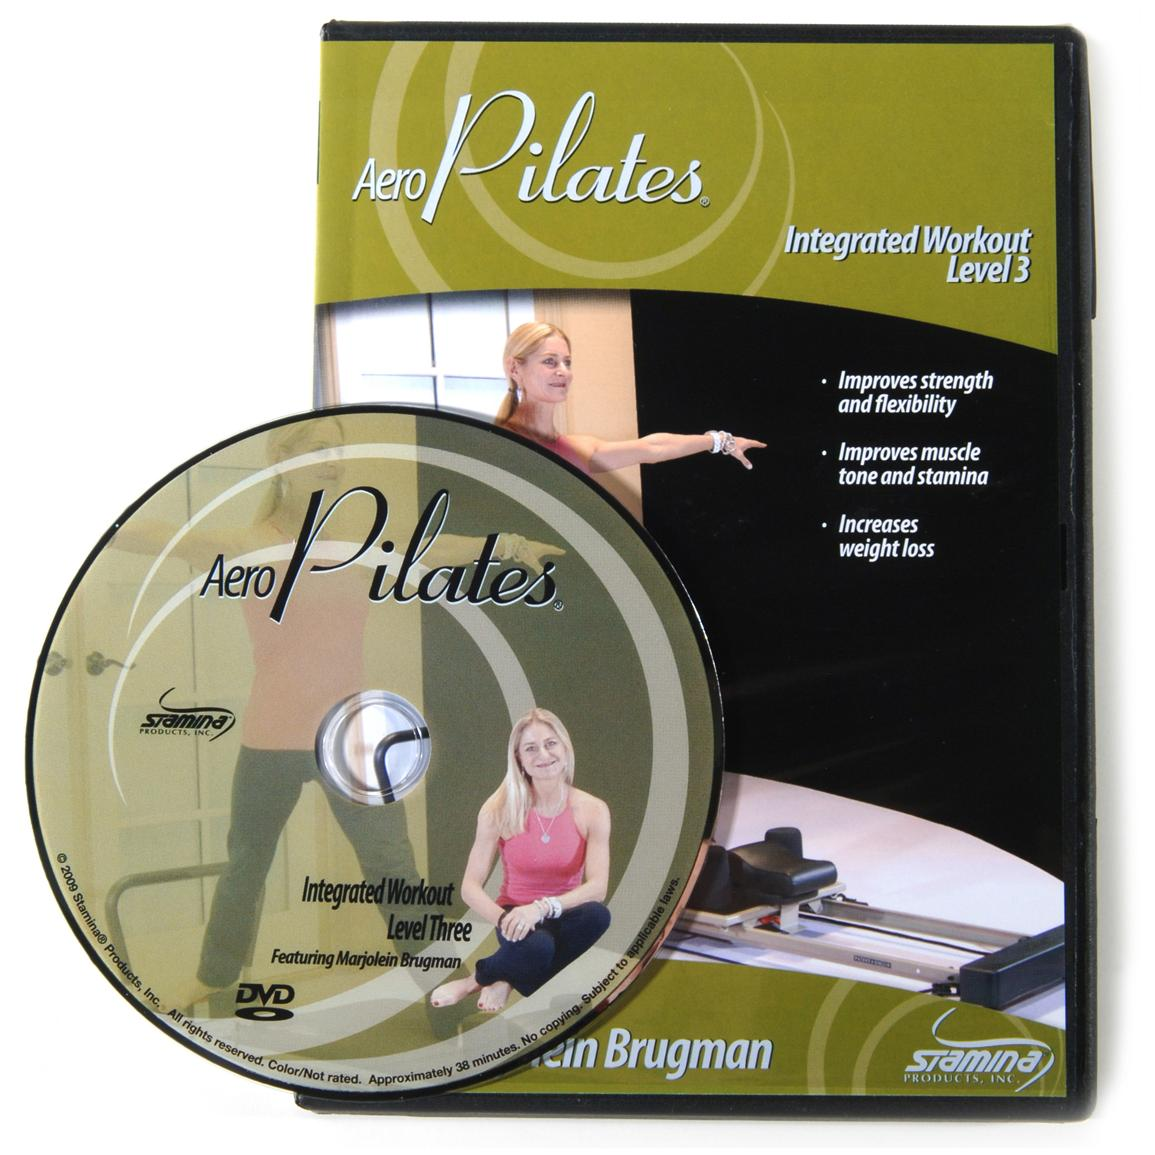 Stamina® AeroPilates® Integrated Workout Level Three DVD with Marjolein Brugman